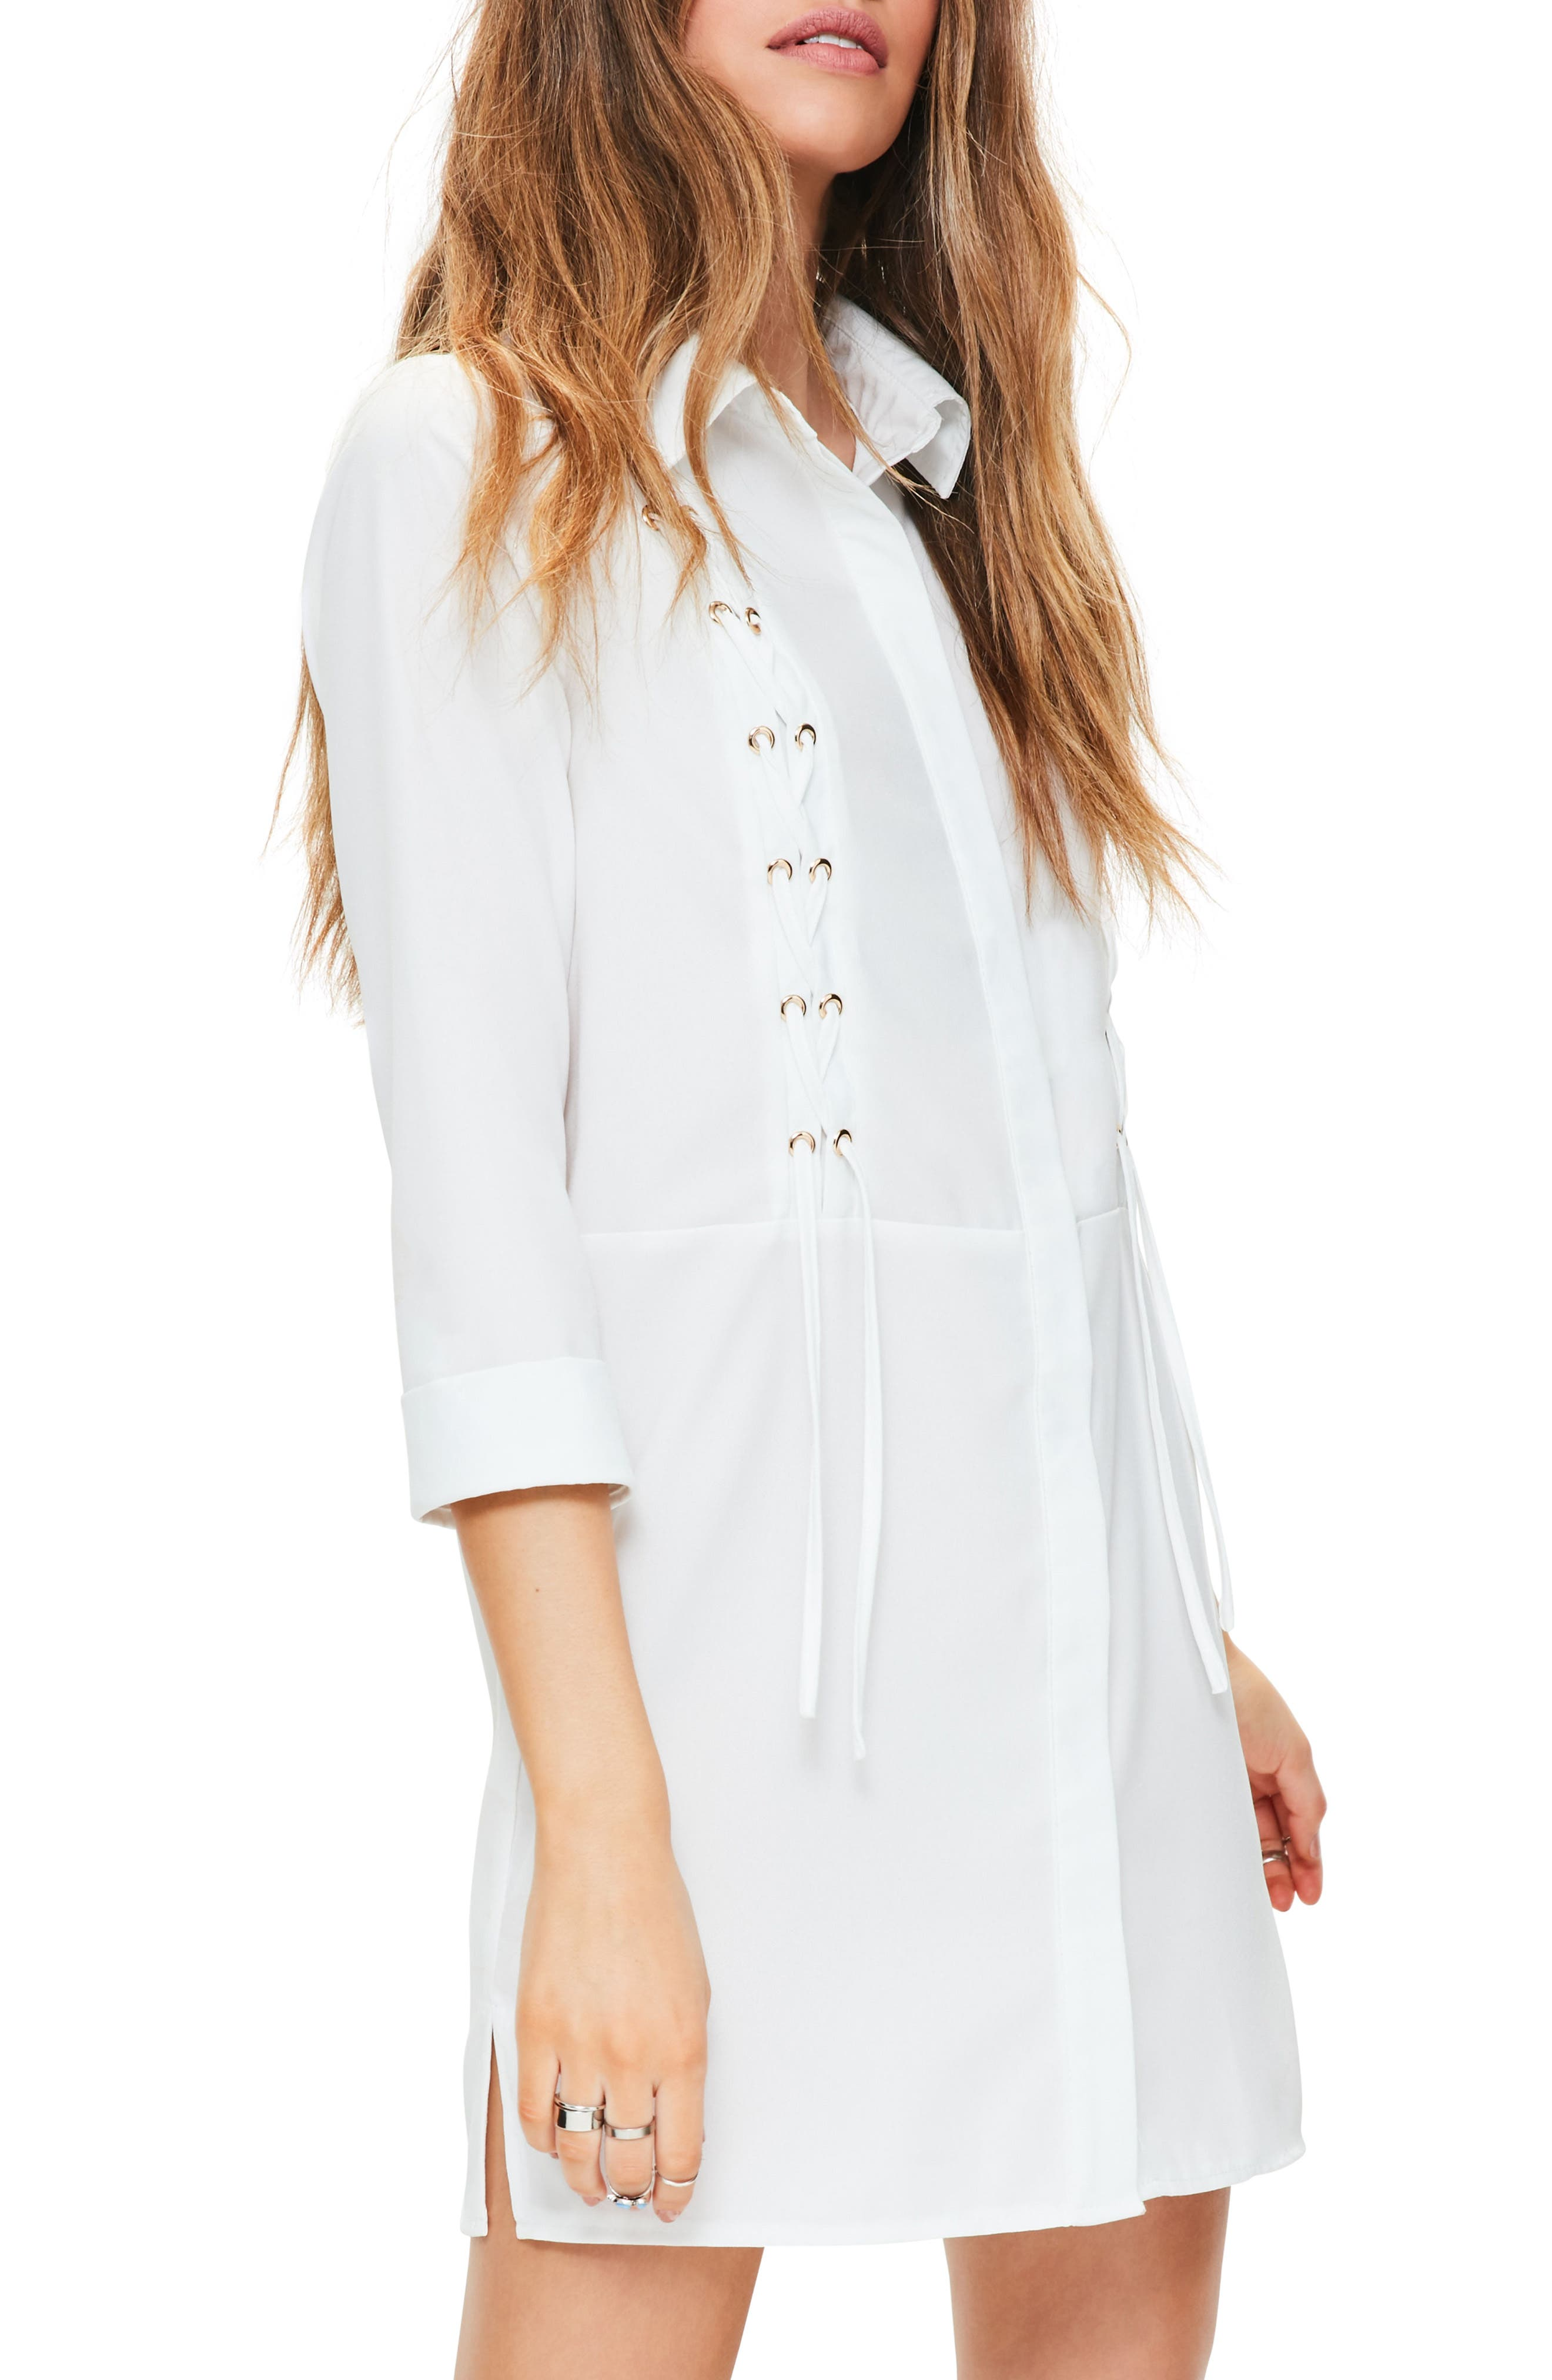 Missguided Lace-Up Shirtdress